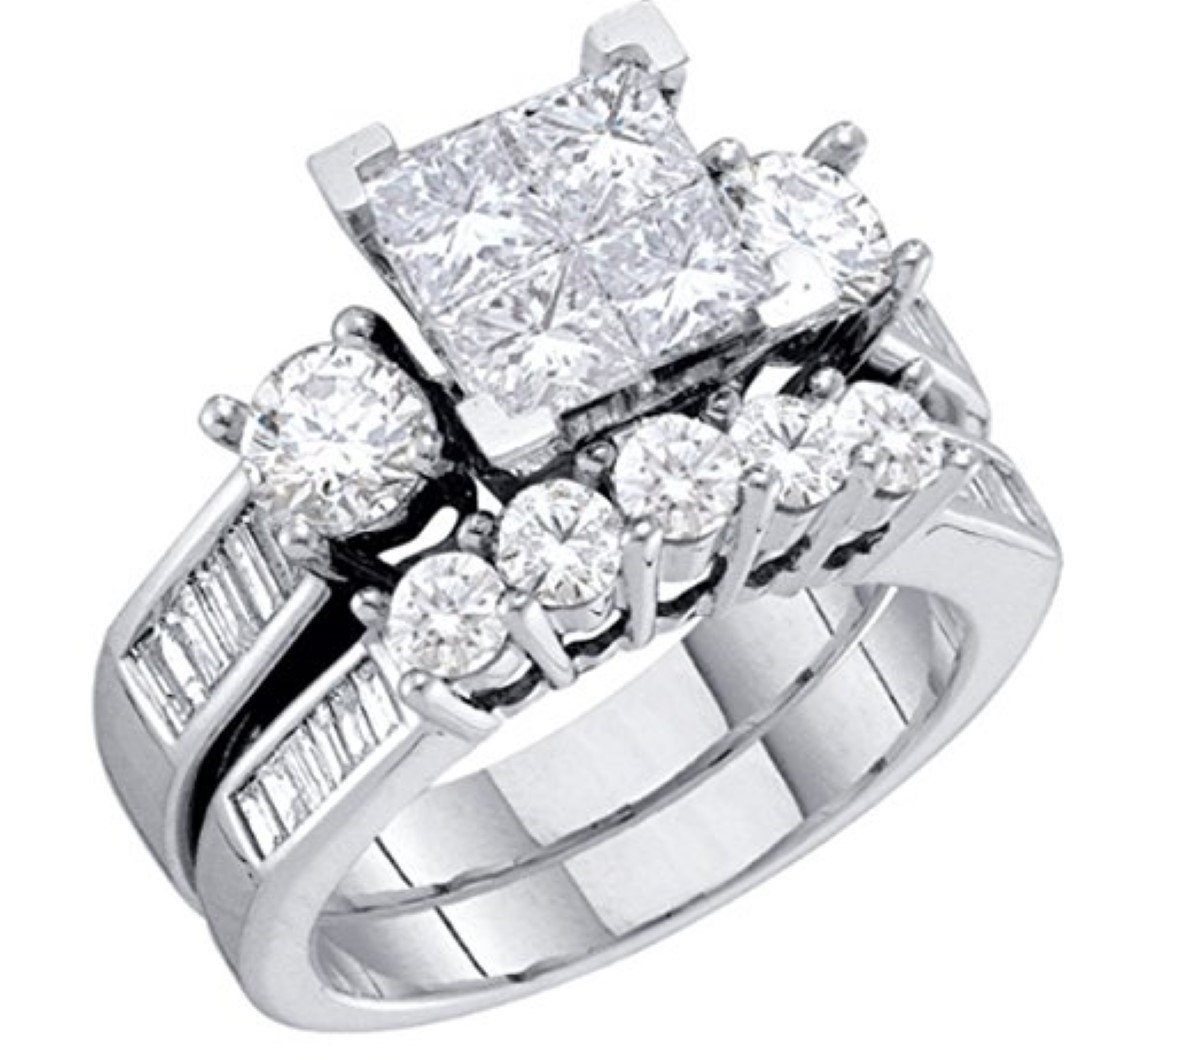 Rings-MidwestJewellery 10k White Gold Bridal Rings Set (1cttw, I2/i3 Clarity, I/j Color)